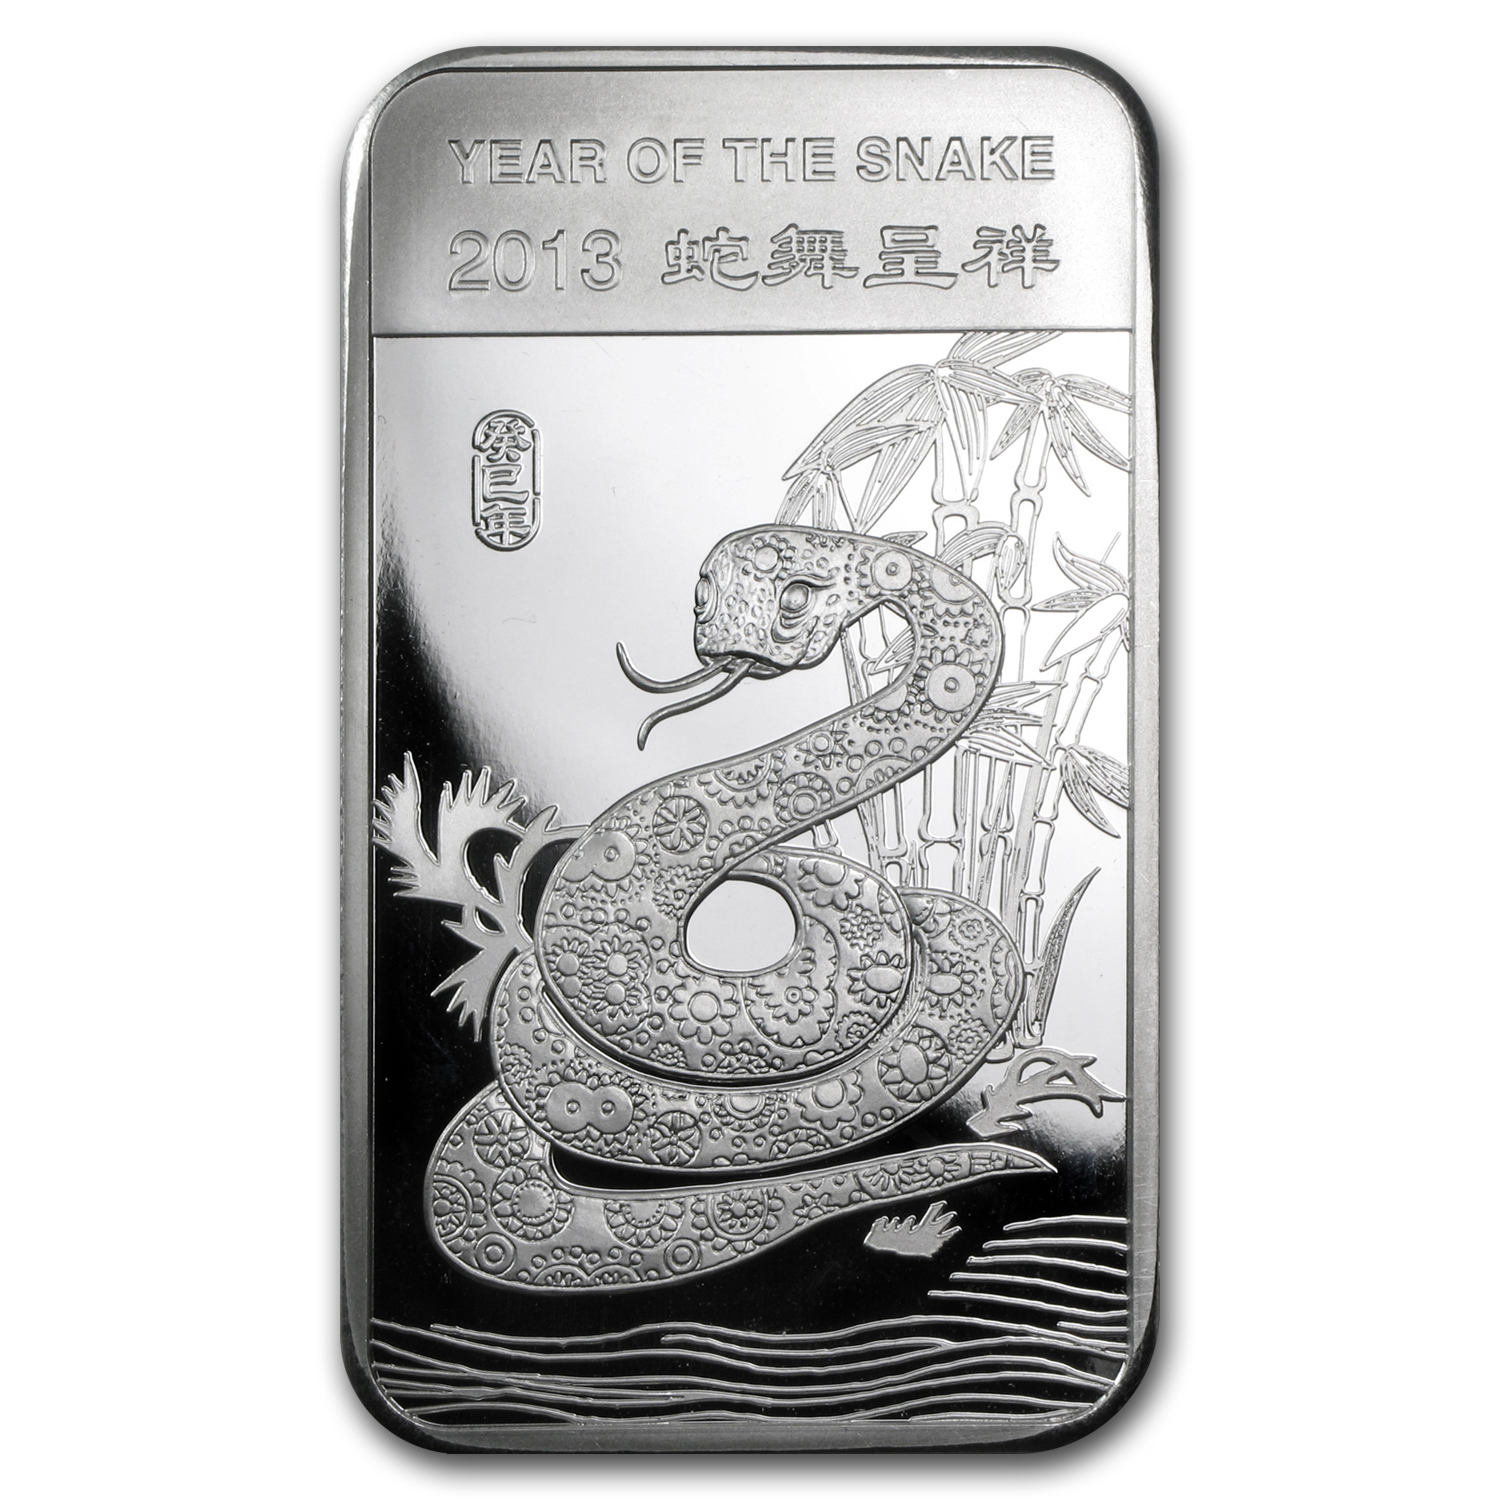 5 oz Silver Bars - APMEX (2013 Year of the Snake)